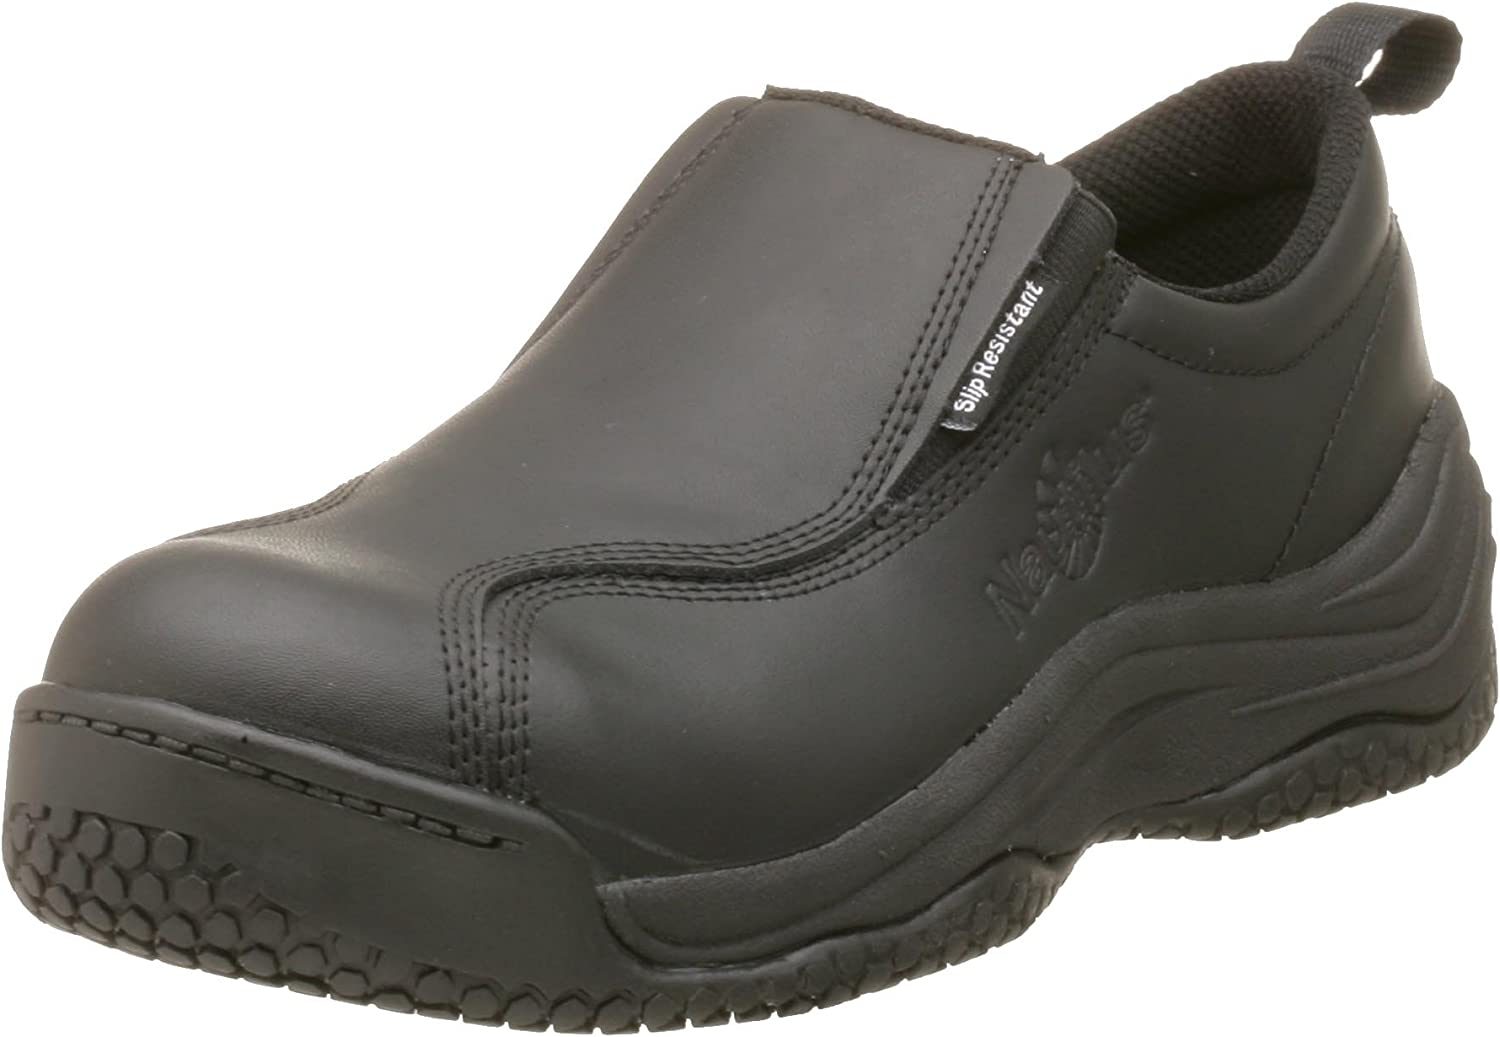 Nautilus 110 Slip Resistant Comp Safety Toe No Exposed Metal Slip-On